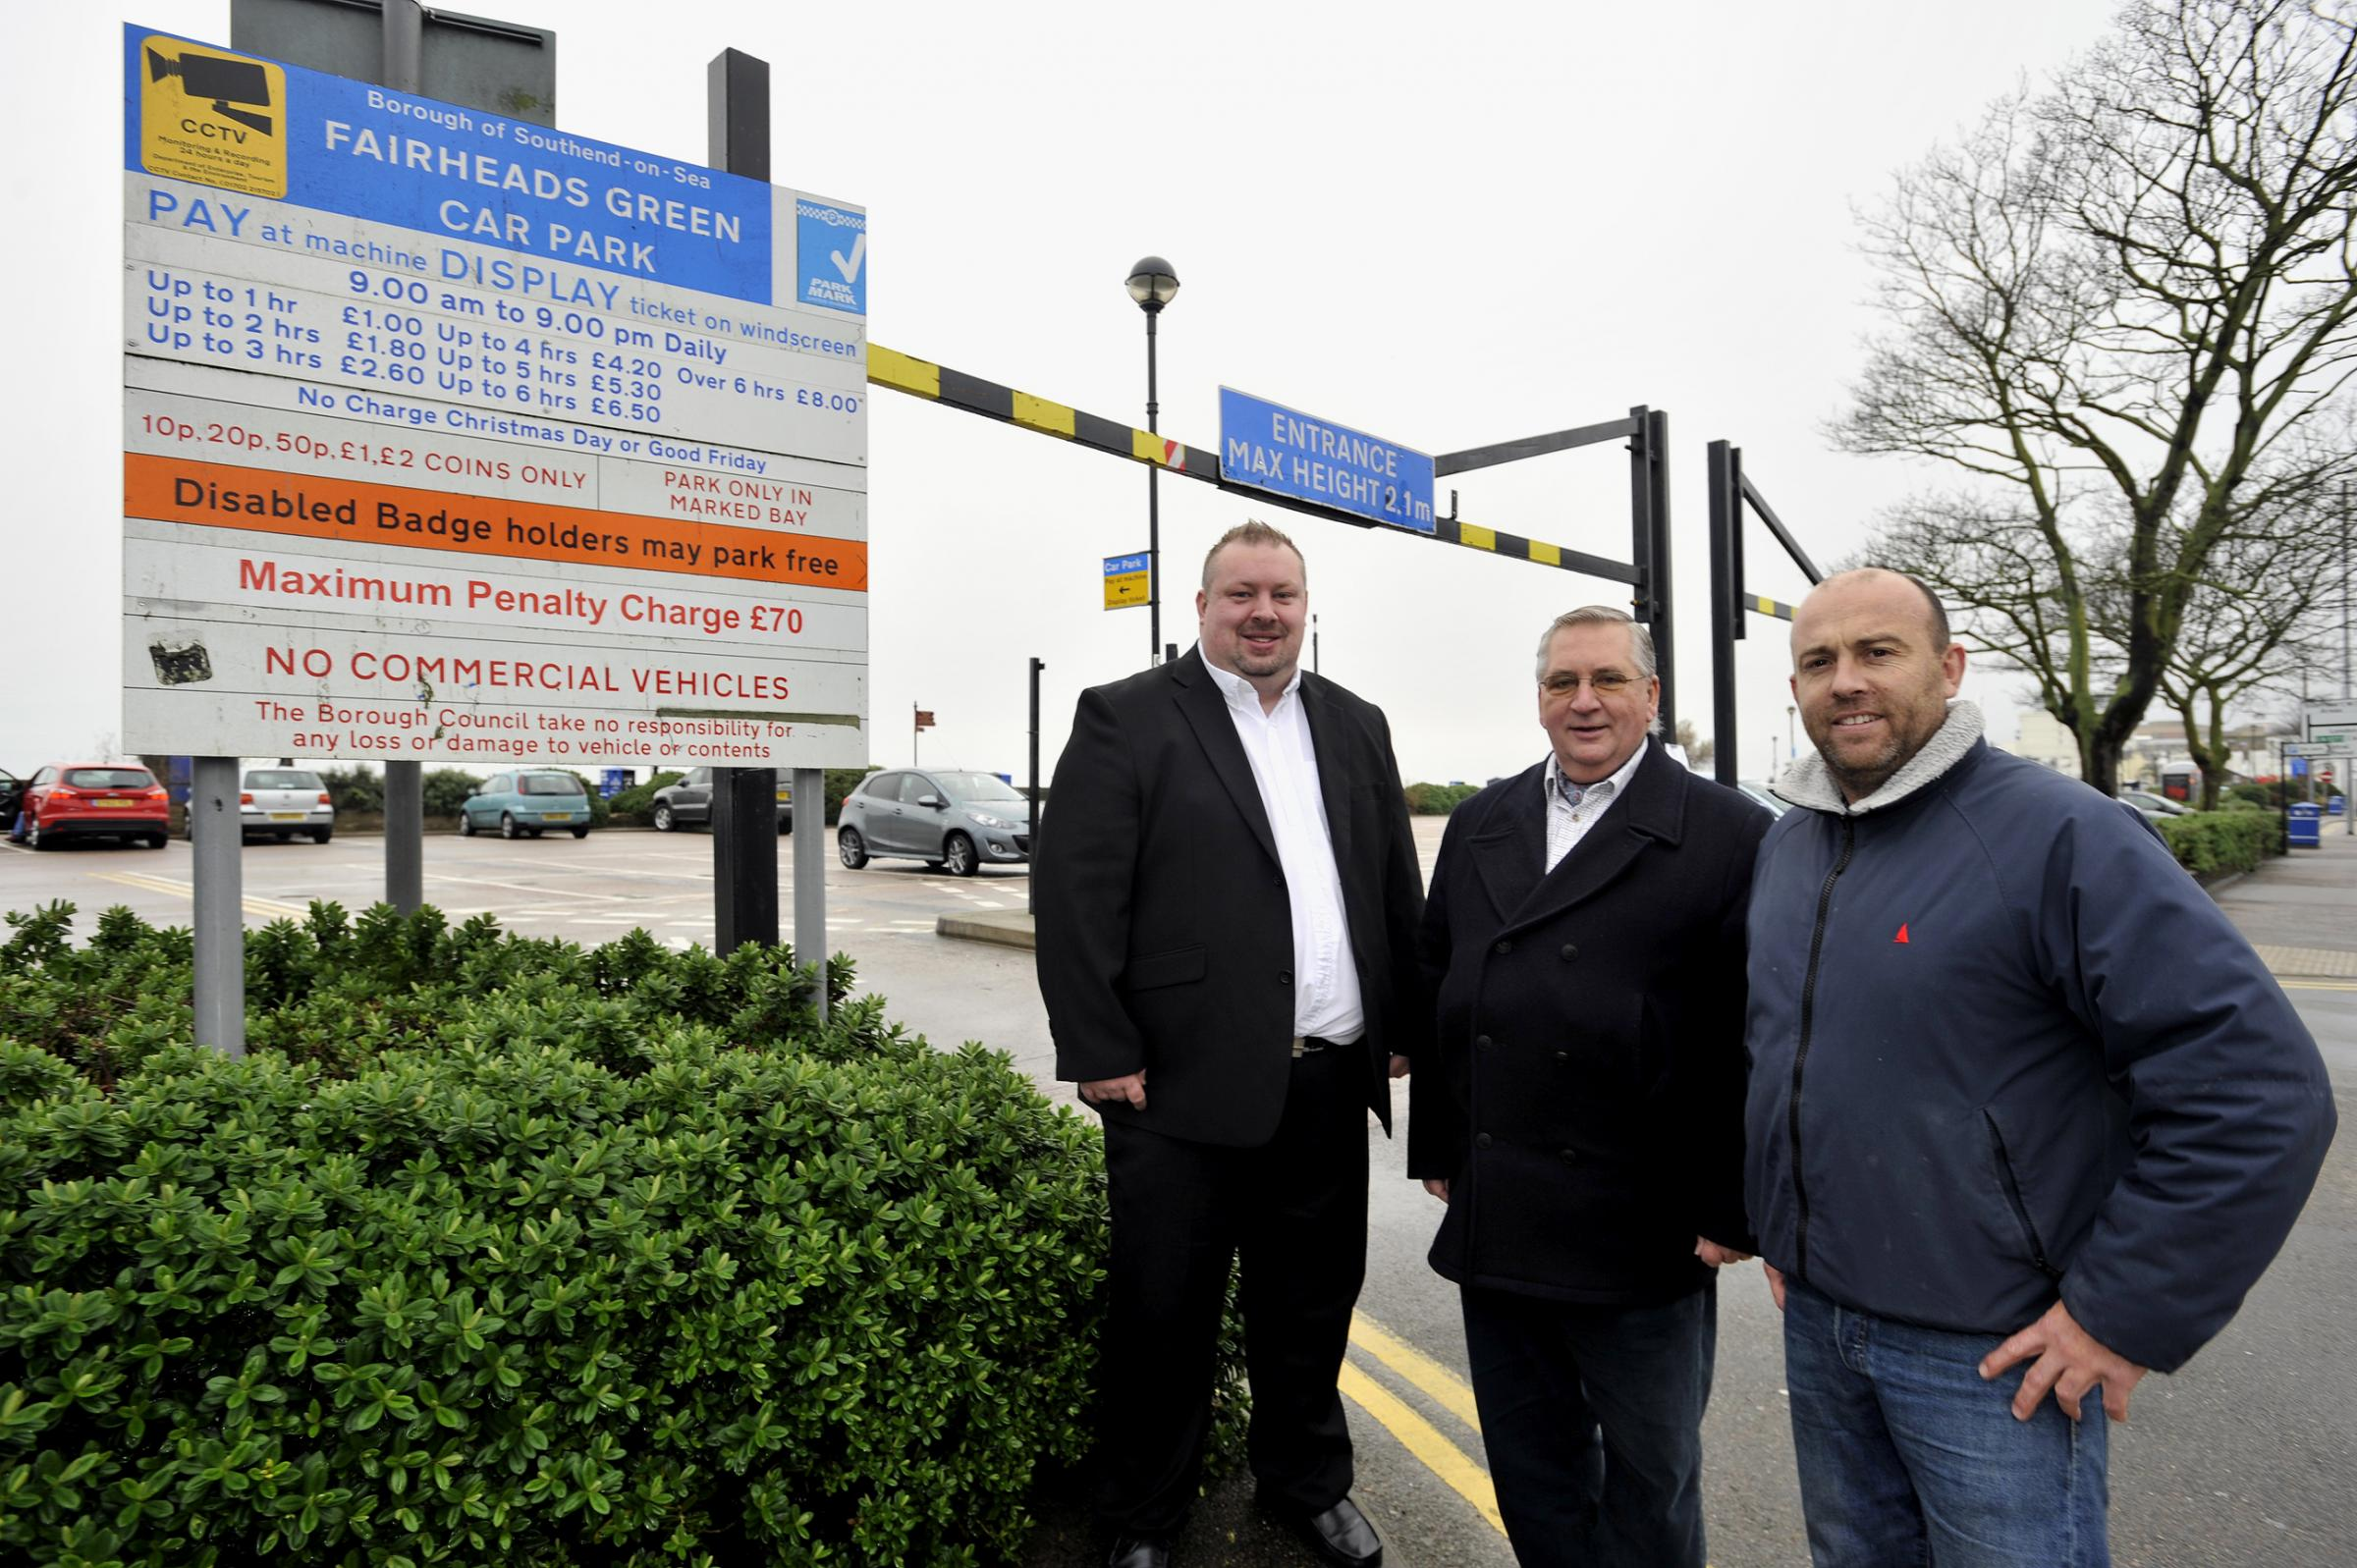 Tony Cox, councillor responsible for parking, John Lamb, councillor responsible for regeneration, and Paul Thompson, chairman of Southend Seafront Traders' Association, at the Fairheads Green car park